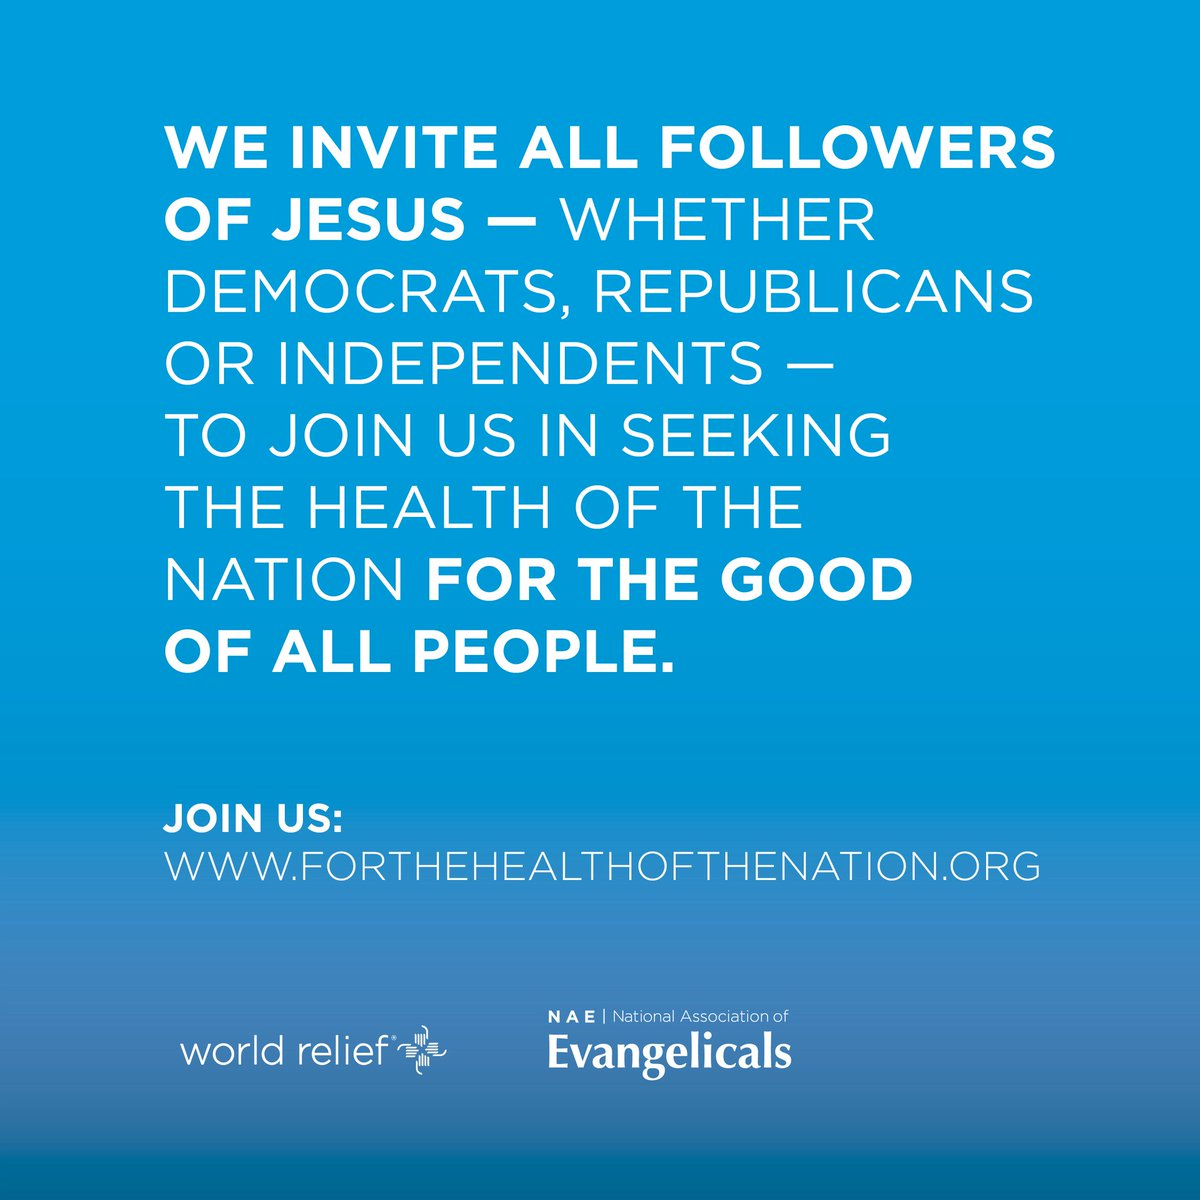 We invite Christians to join us in affirming this statement. It is time to promote faithful, evangelical, civic engagement & a biblically balanced agenda as we seek to commit to the biblical call to act justly, love mercy, & to walk humbly with our God.  https://t.co/7zaXKgehK1 https://t.co/9Aad64soPU